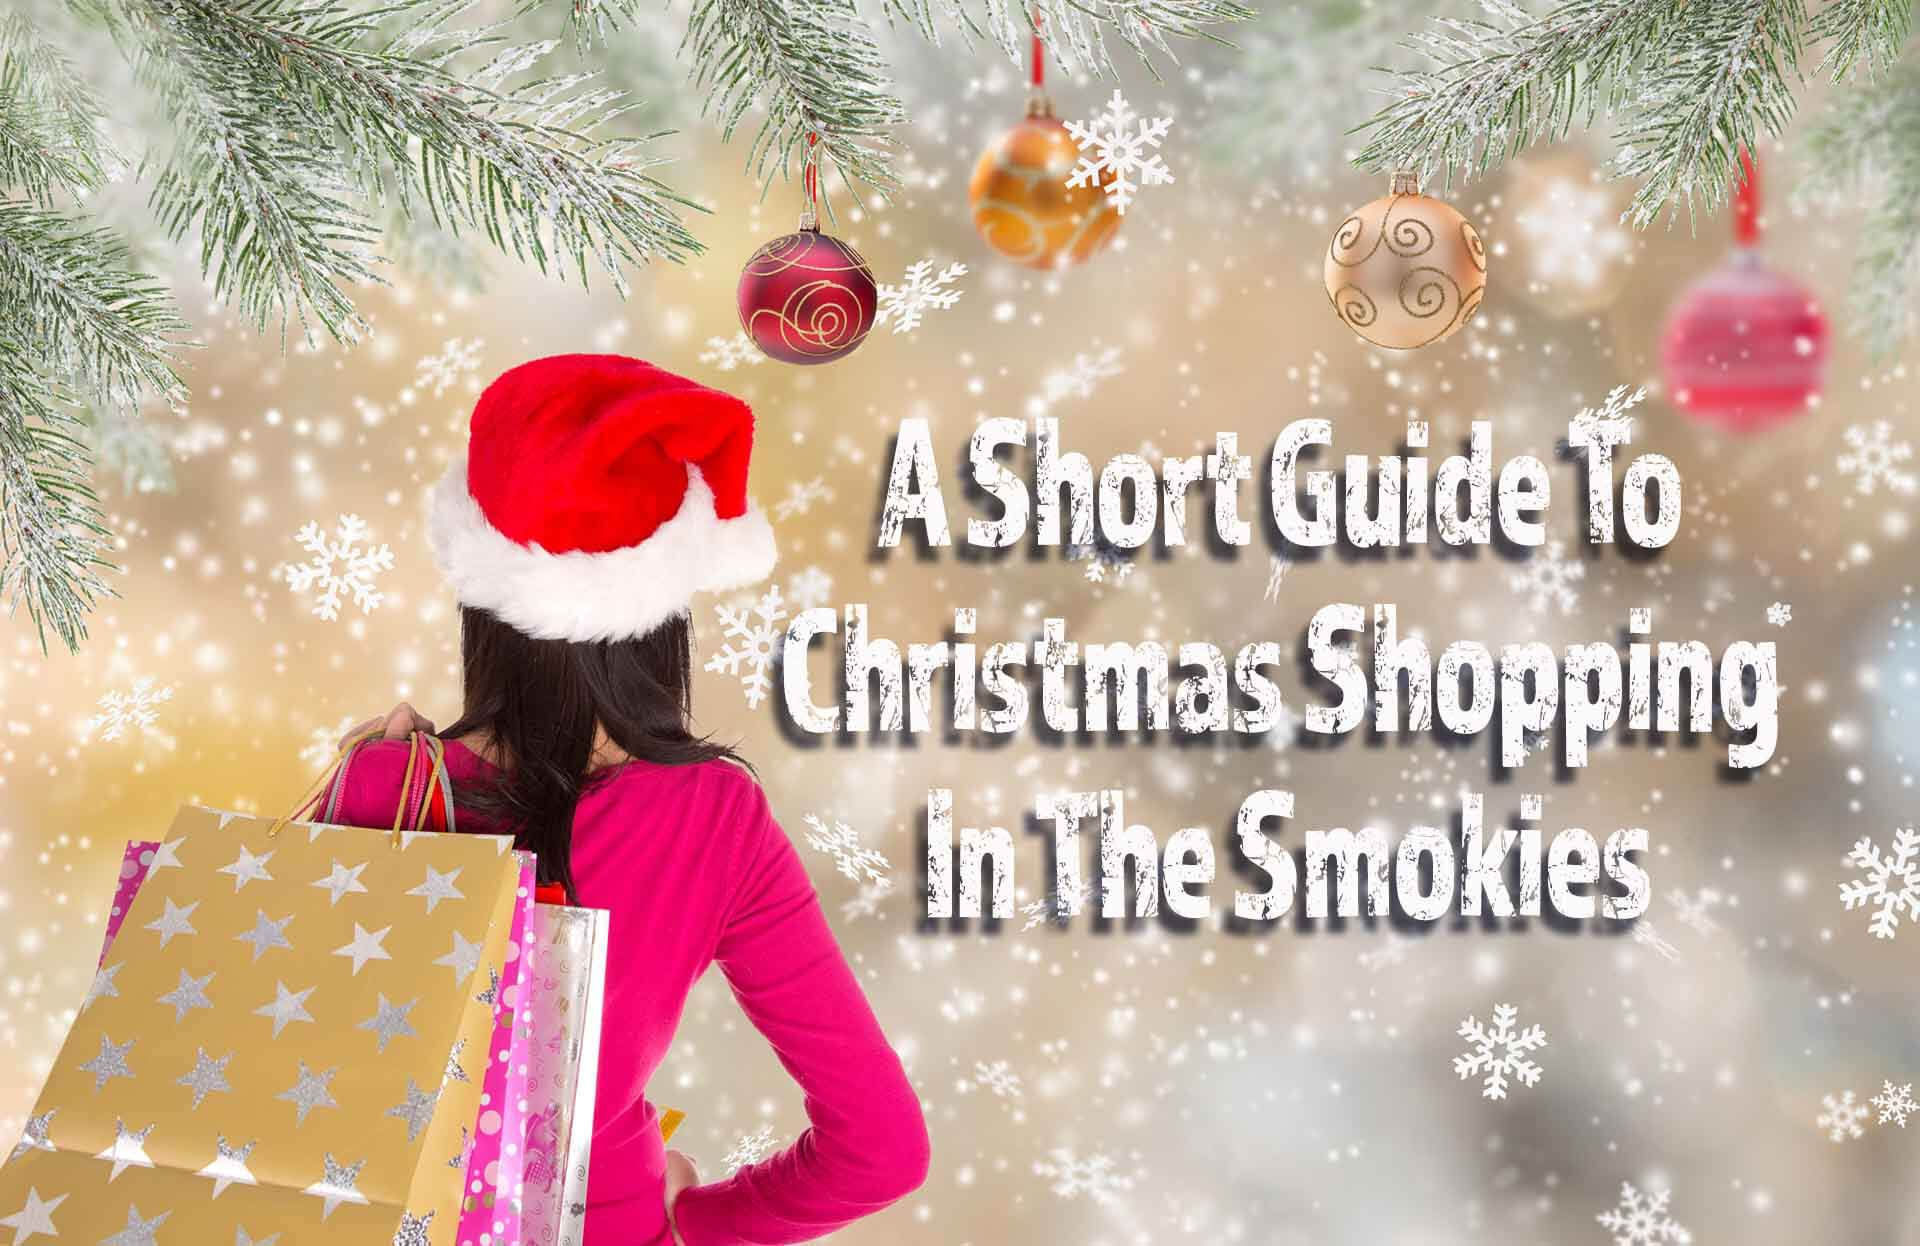 A-Short-Guide-To-Christmas-Shopping-In-The-Smokies.jpg